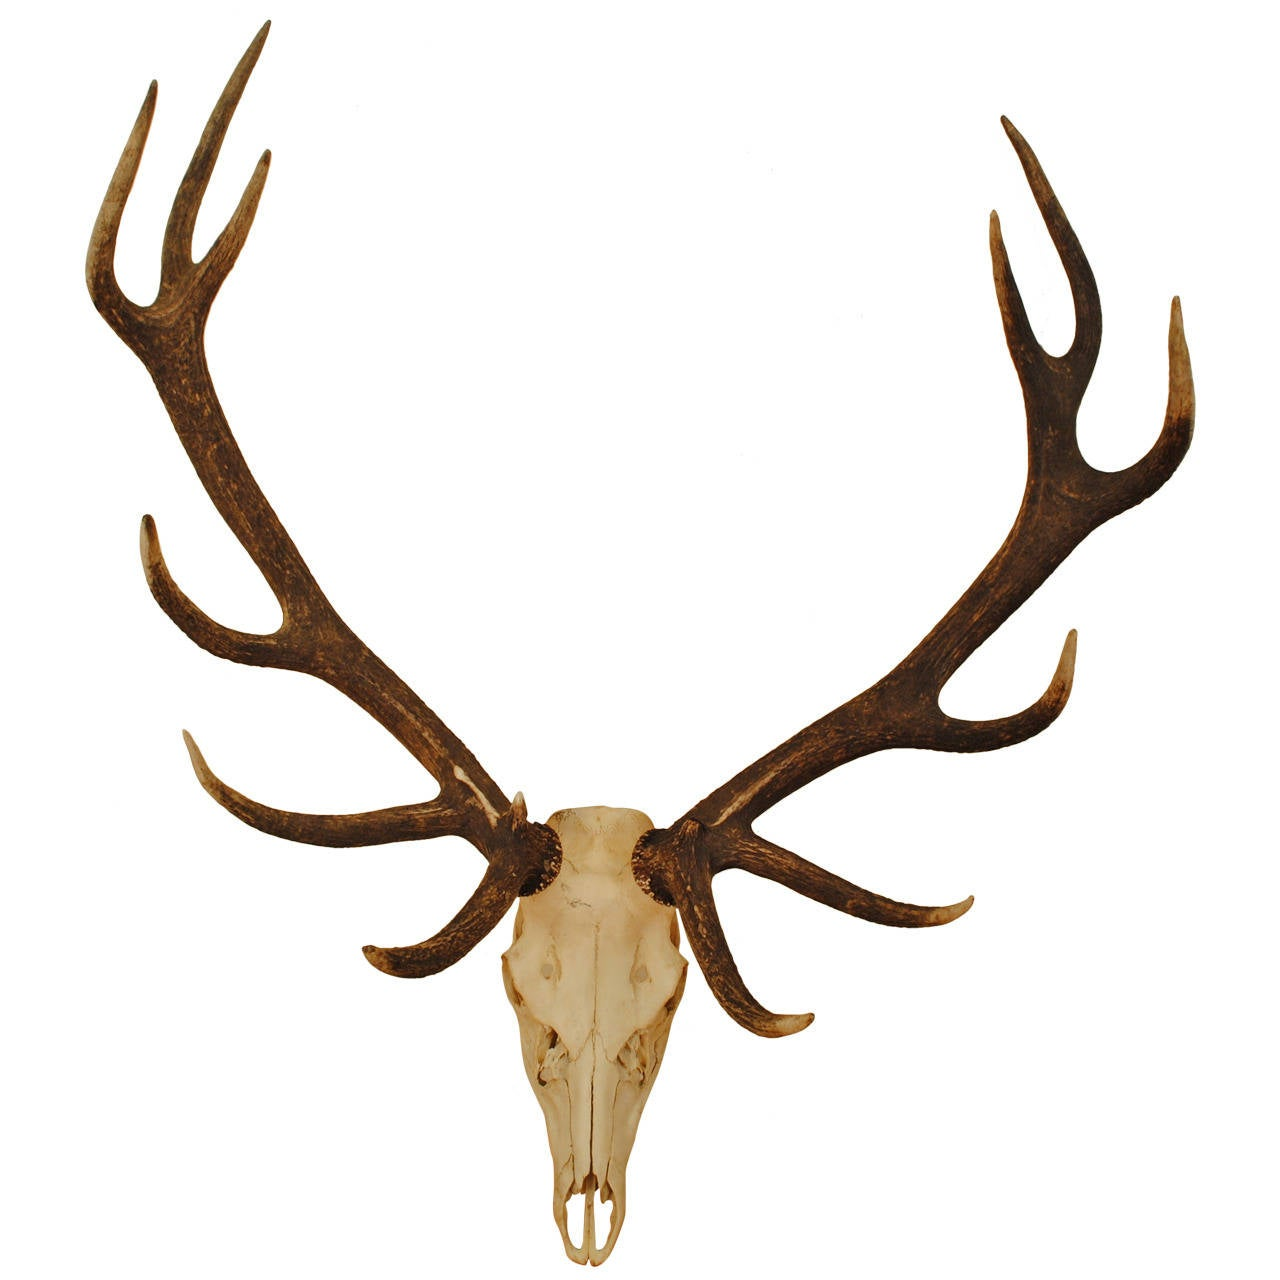 Elk skull drawing - photo#8